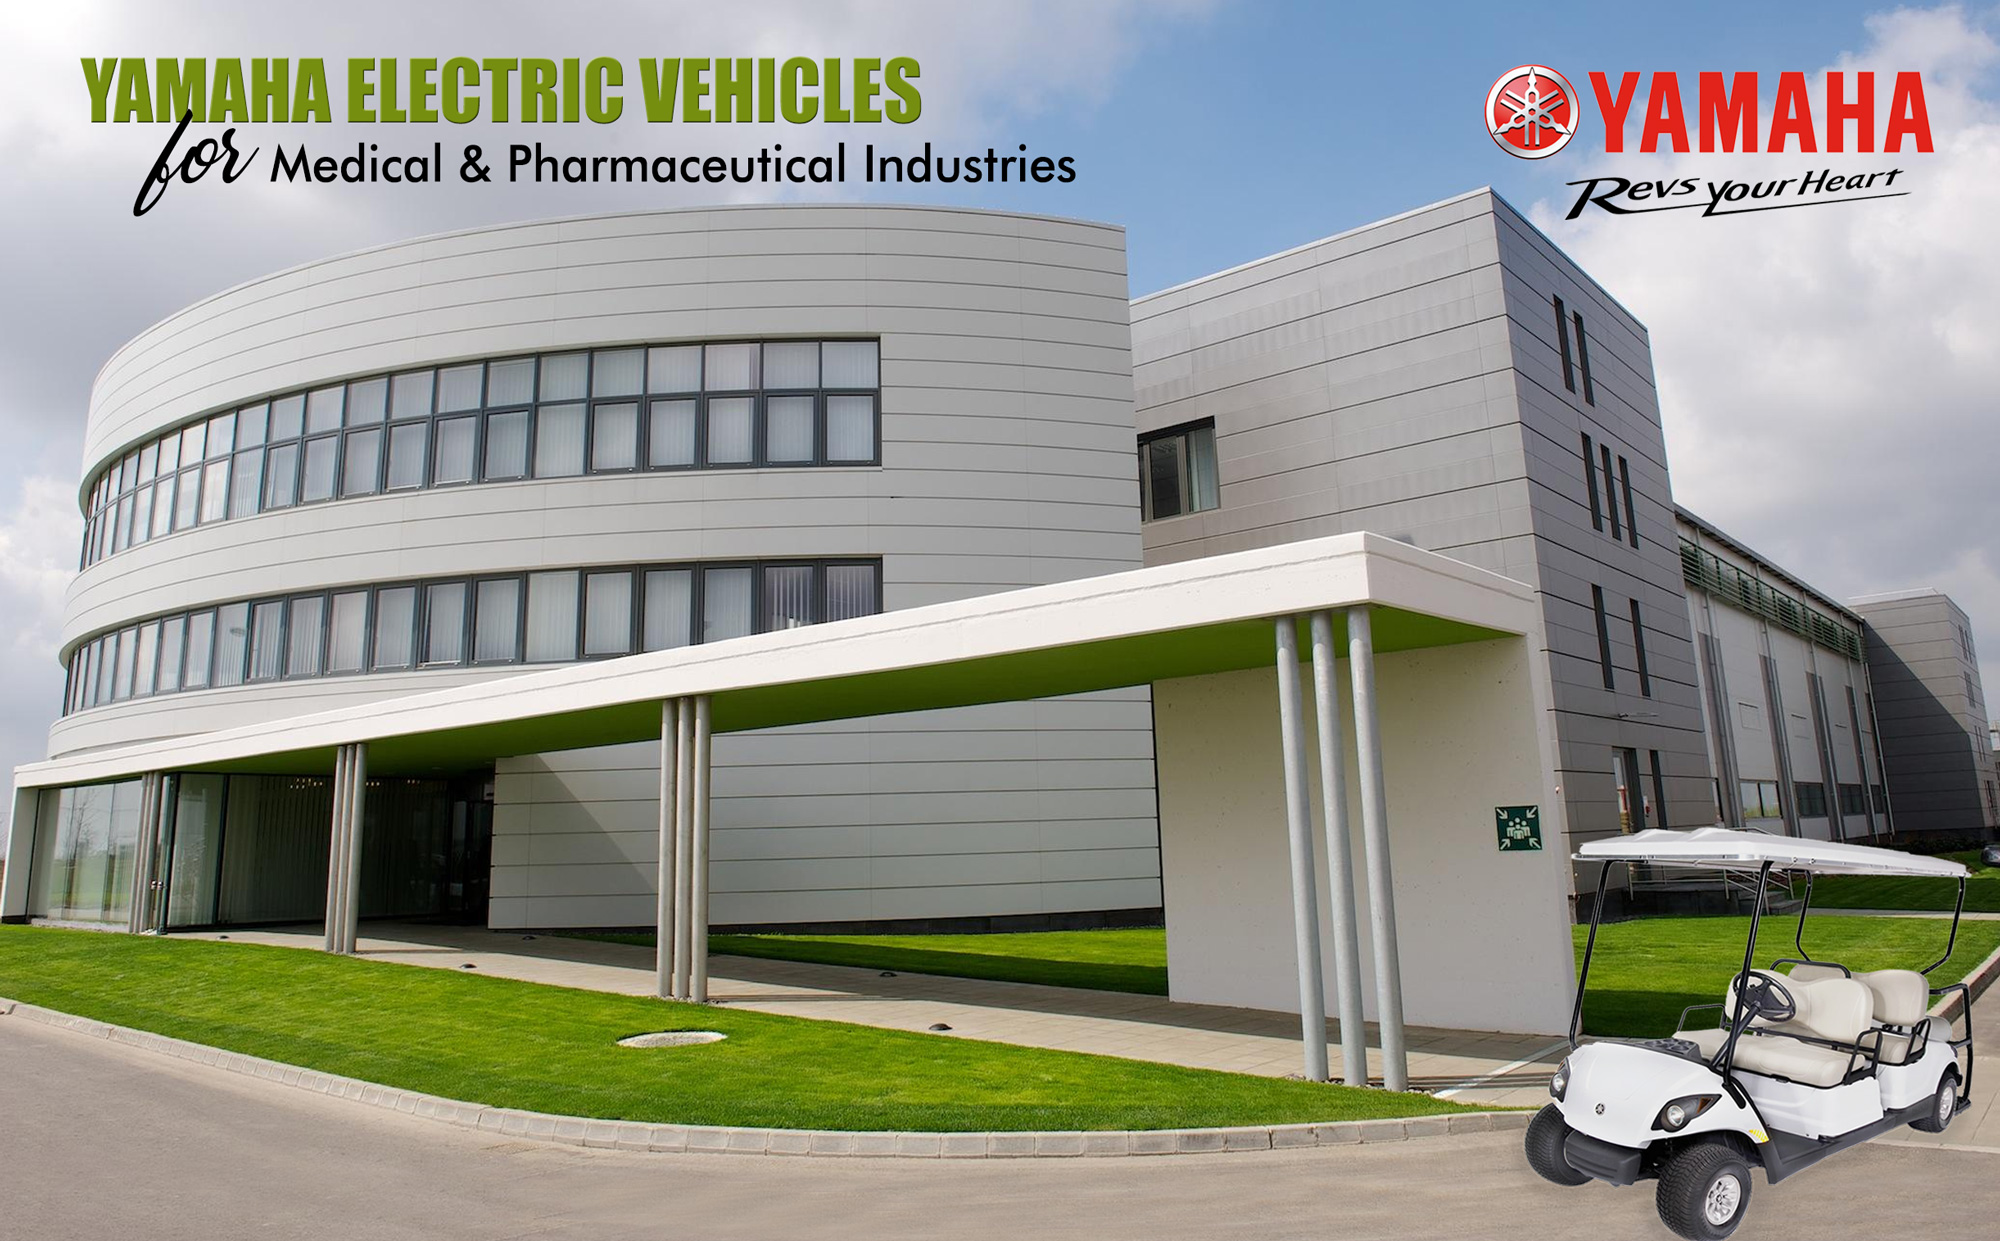 Yamaha Electric Vehicles at Pharmaceutical Industries